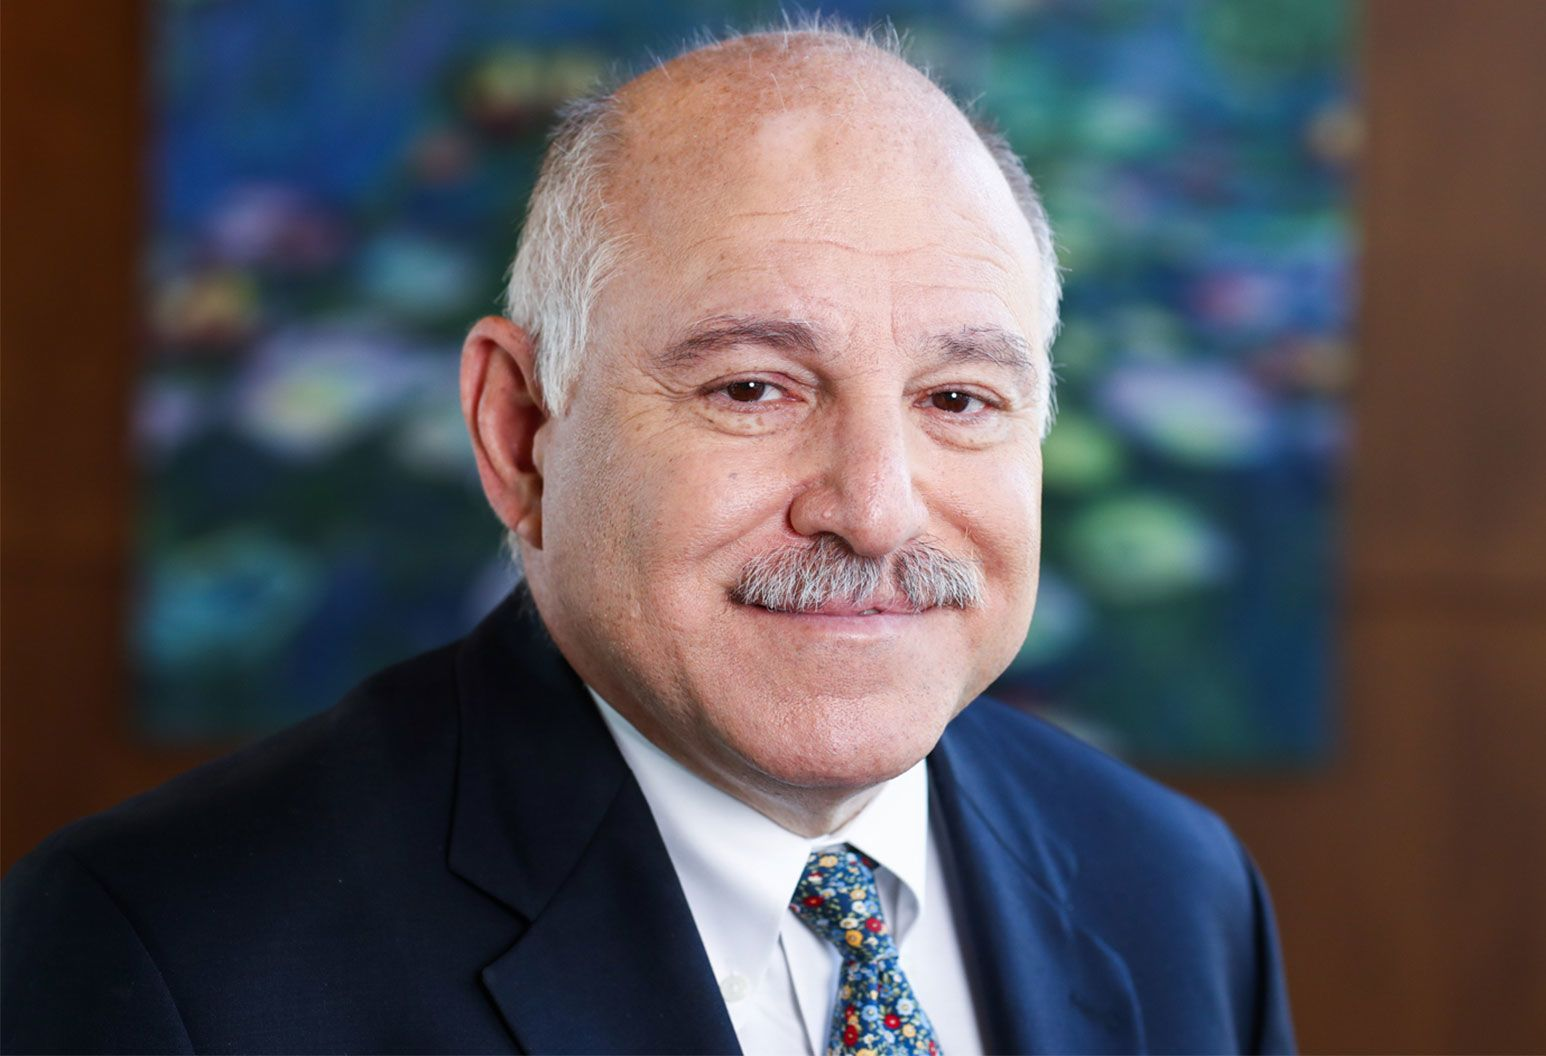 An elderly bald man, with white hairs on the side and a white mustache smiles at the camera wearing a suit with a multicolored tie.